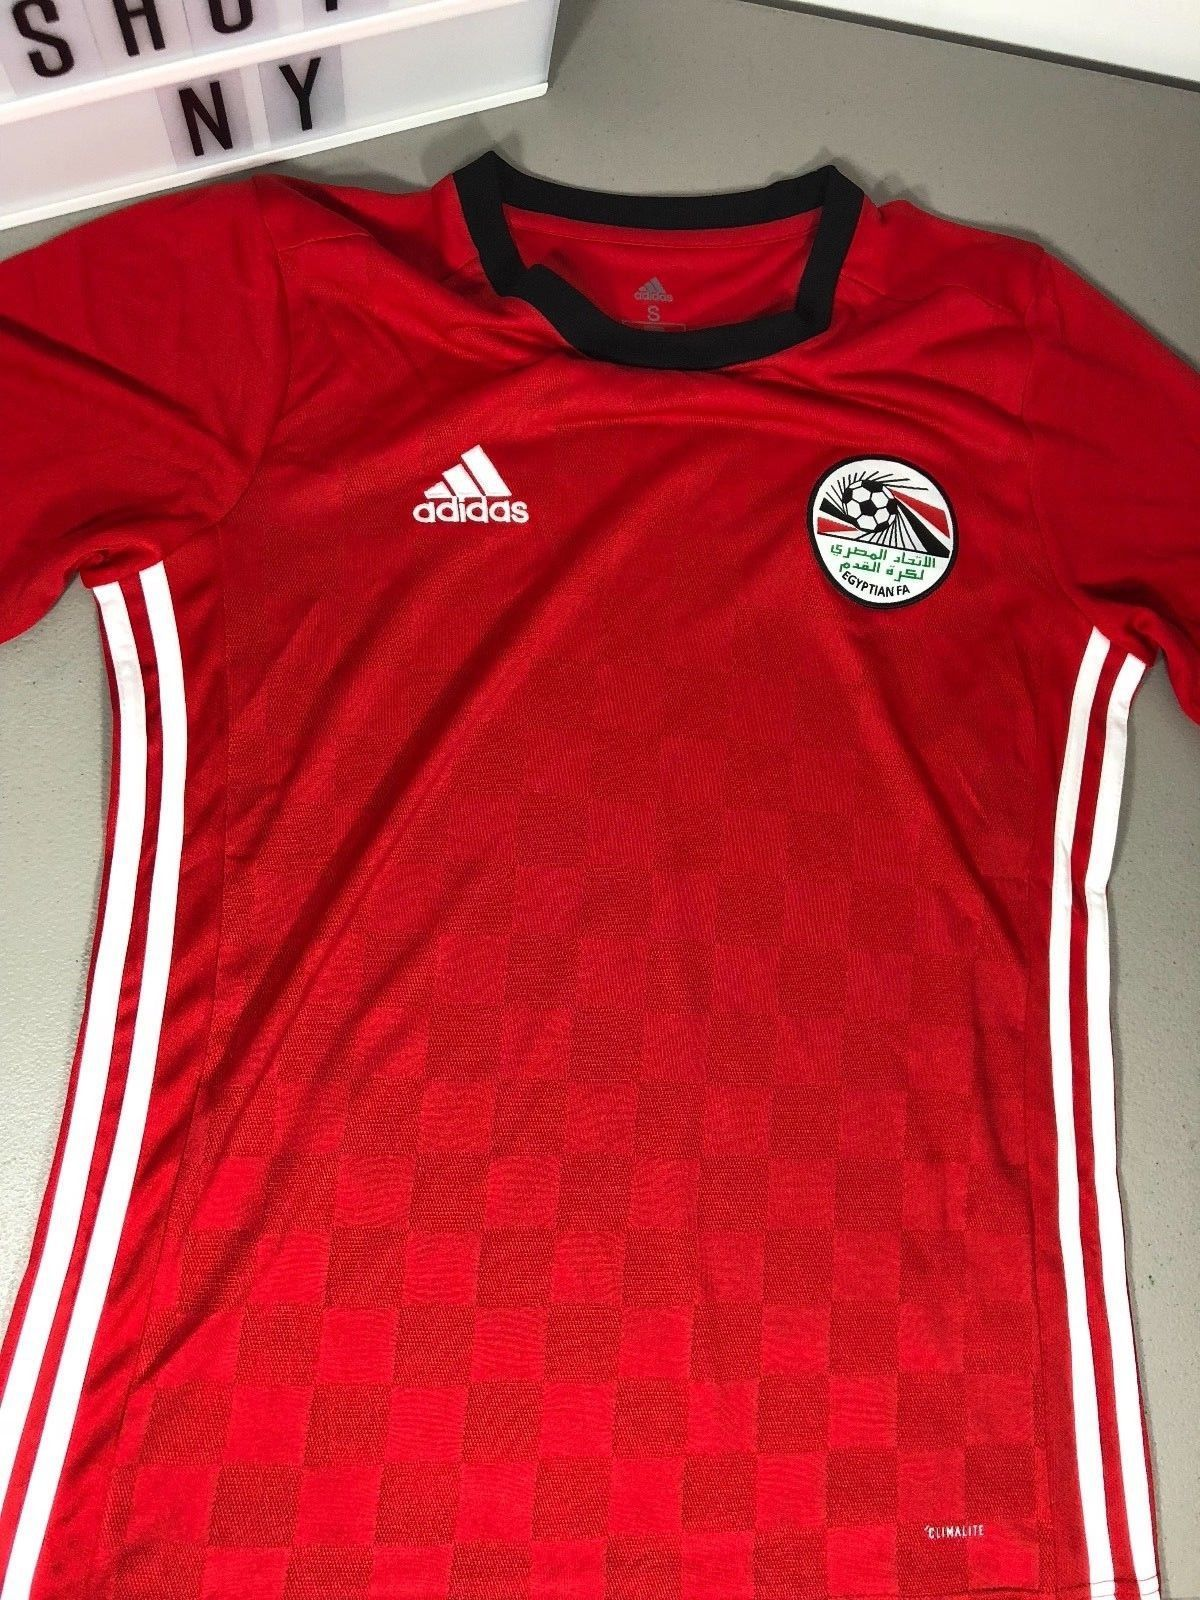 Adidas Mens Egypt Home Jersey World Cup 2018 Small Medium BR3730 Discount  Price 54.99 Free Shipping 52e7efe88